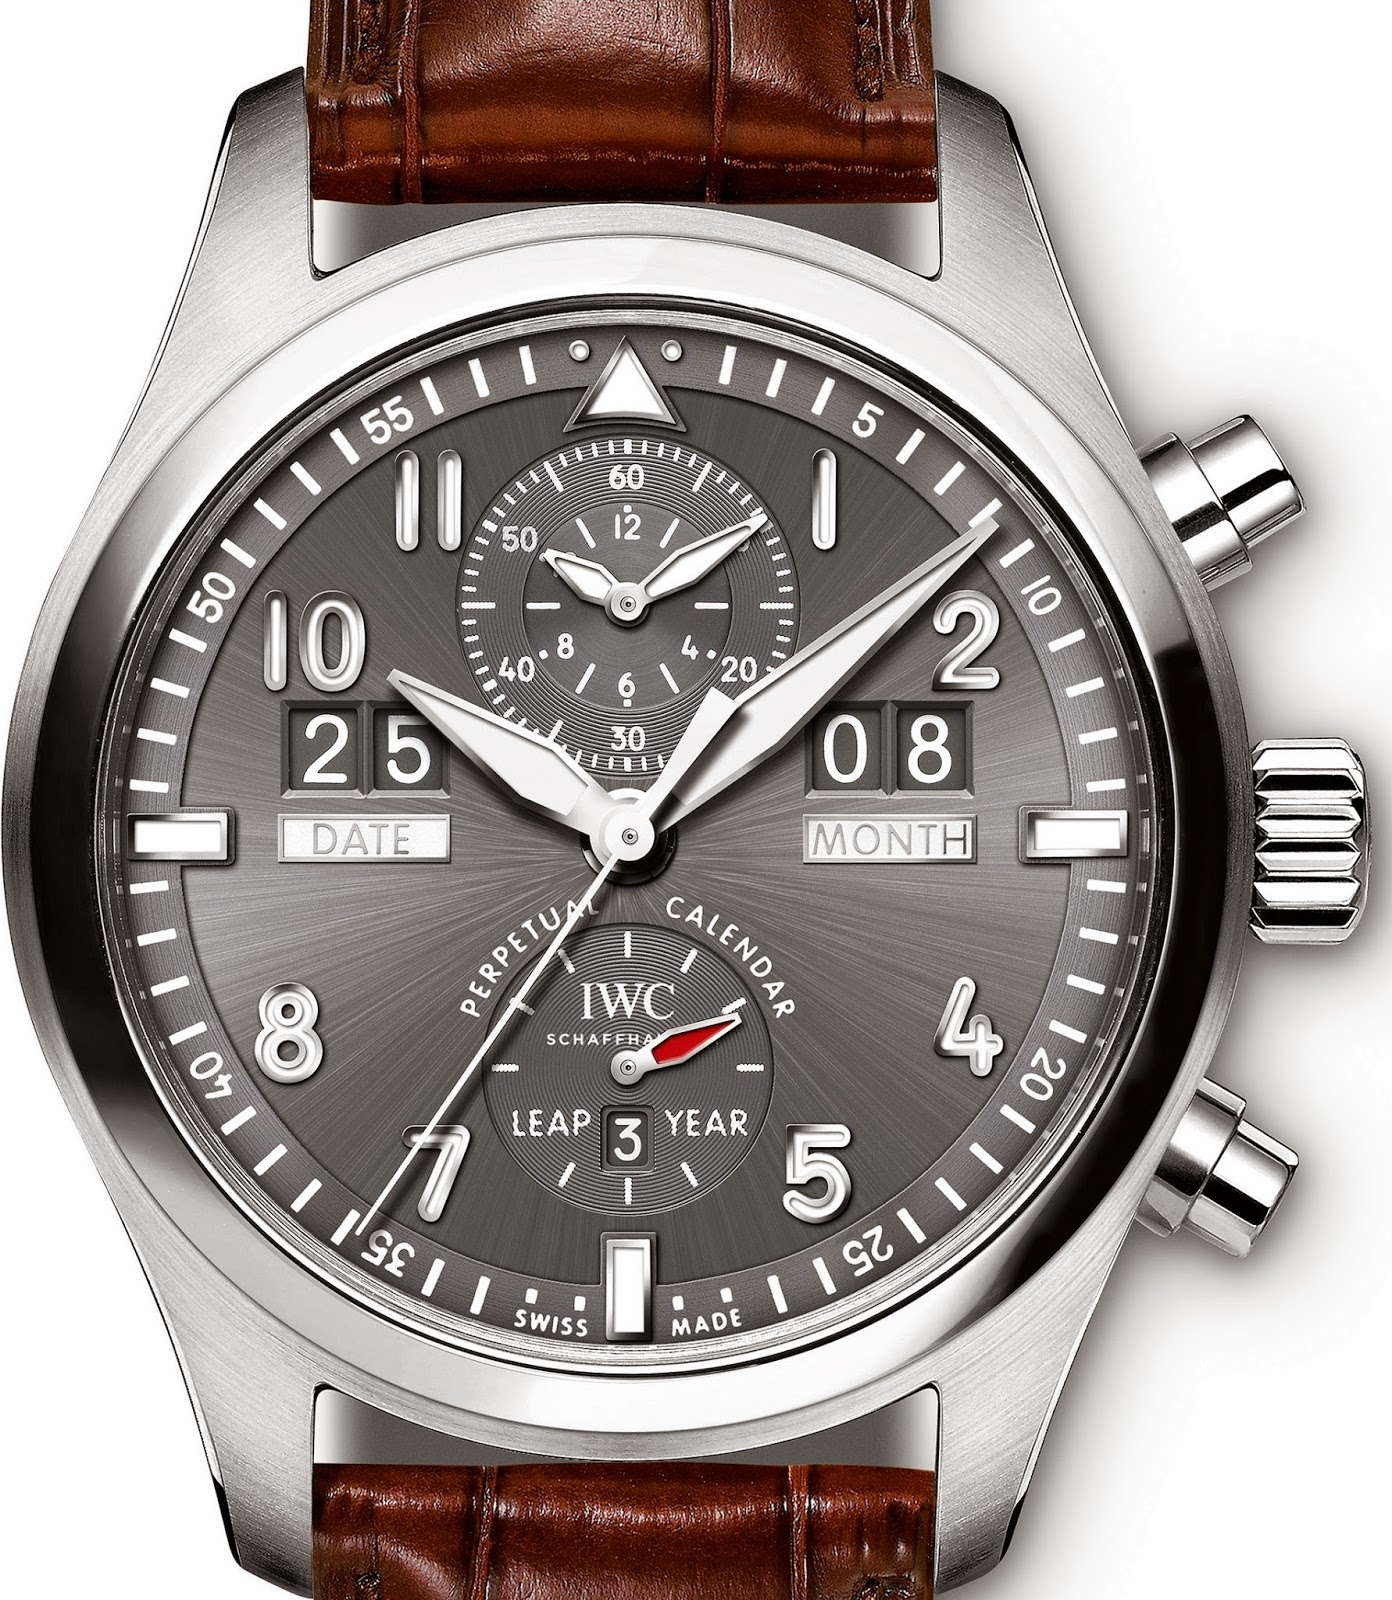 Stainless Steel IWC Pilot Spitfire Perpetual Calendar Digital Date-Month Replica Watch